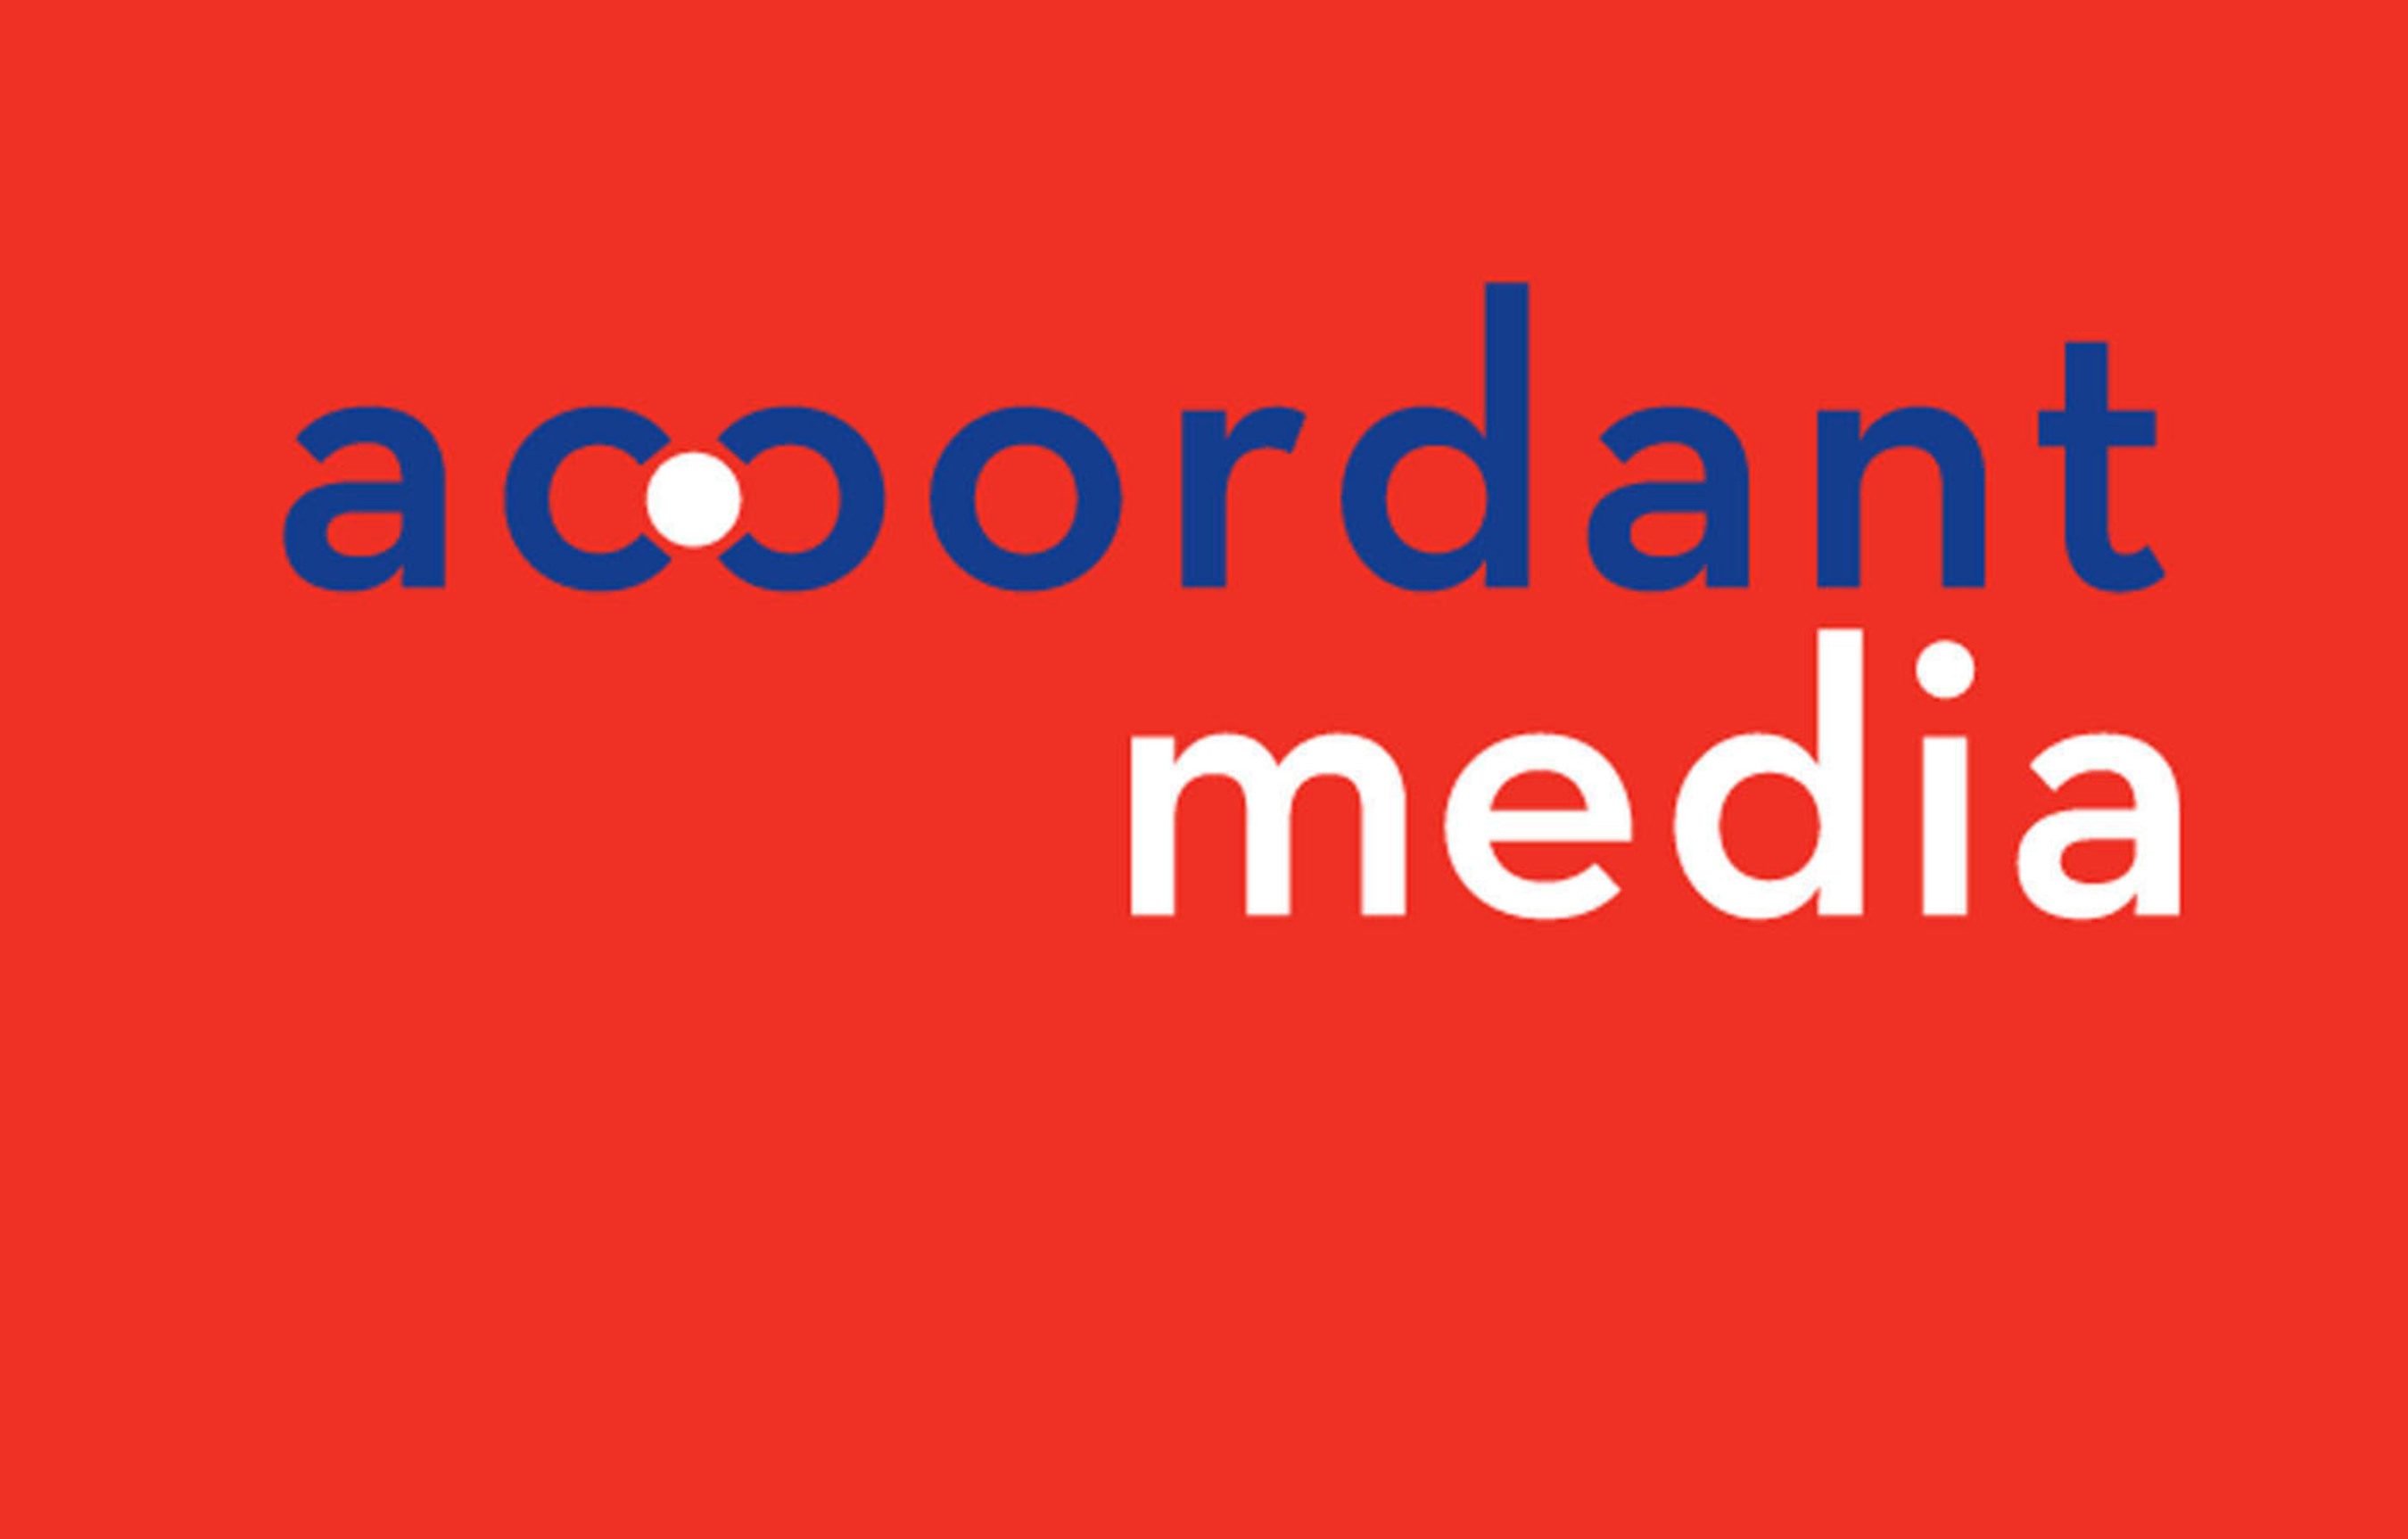 Accordant Media's Pulse Report Shows Marketer Focus on Quality